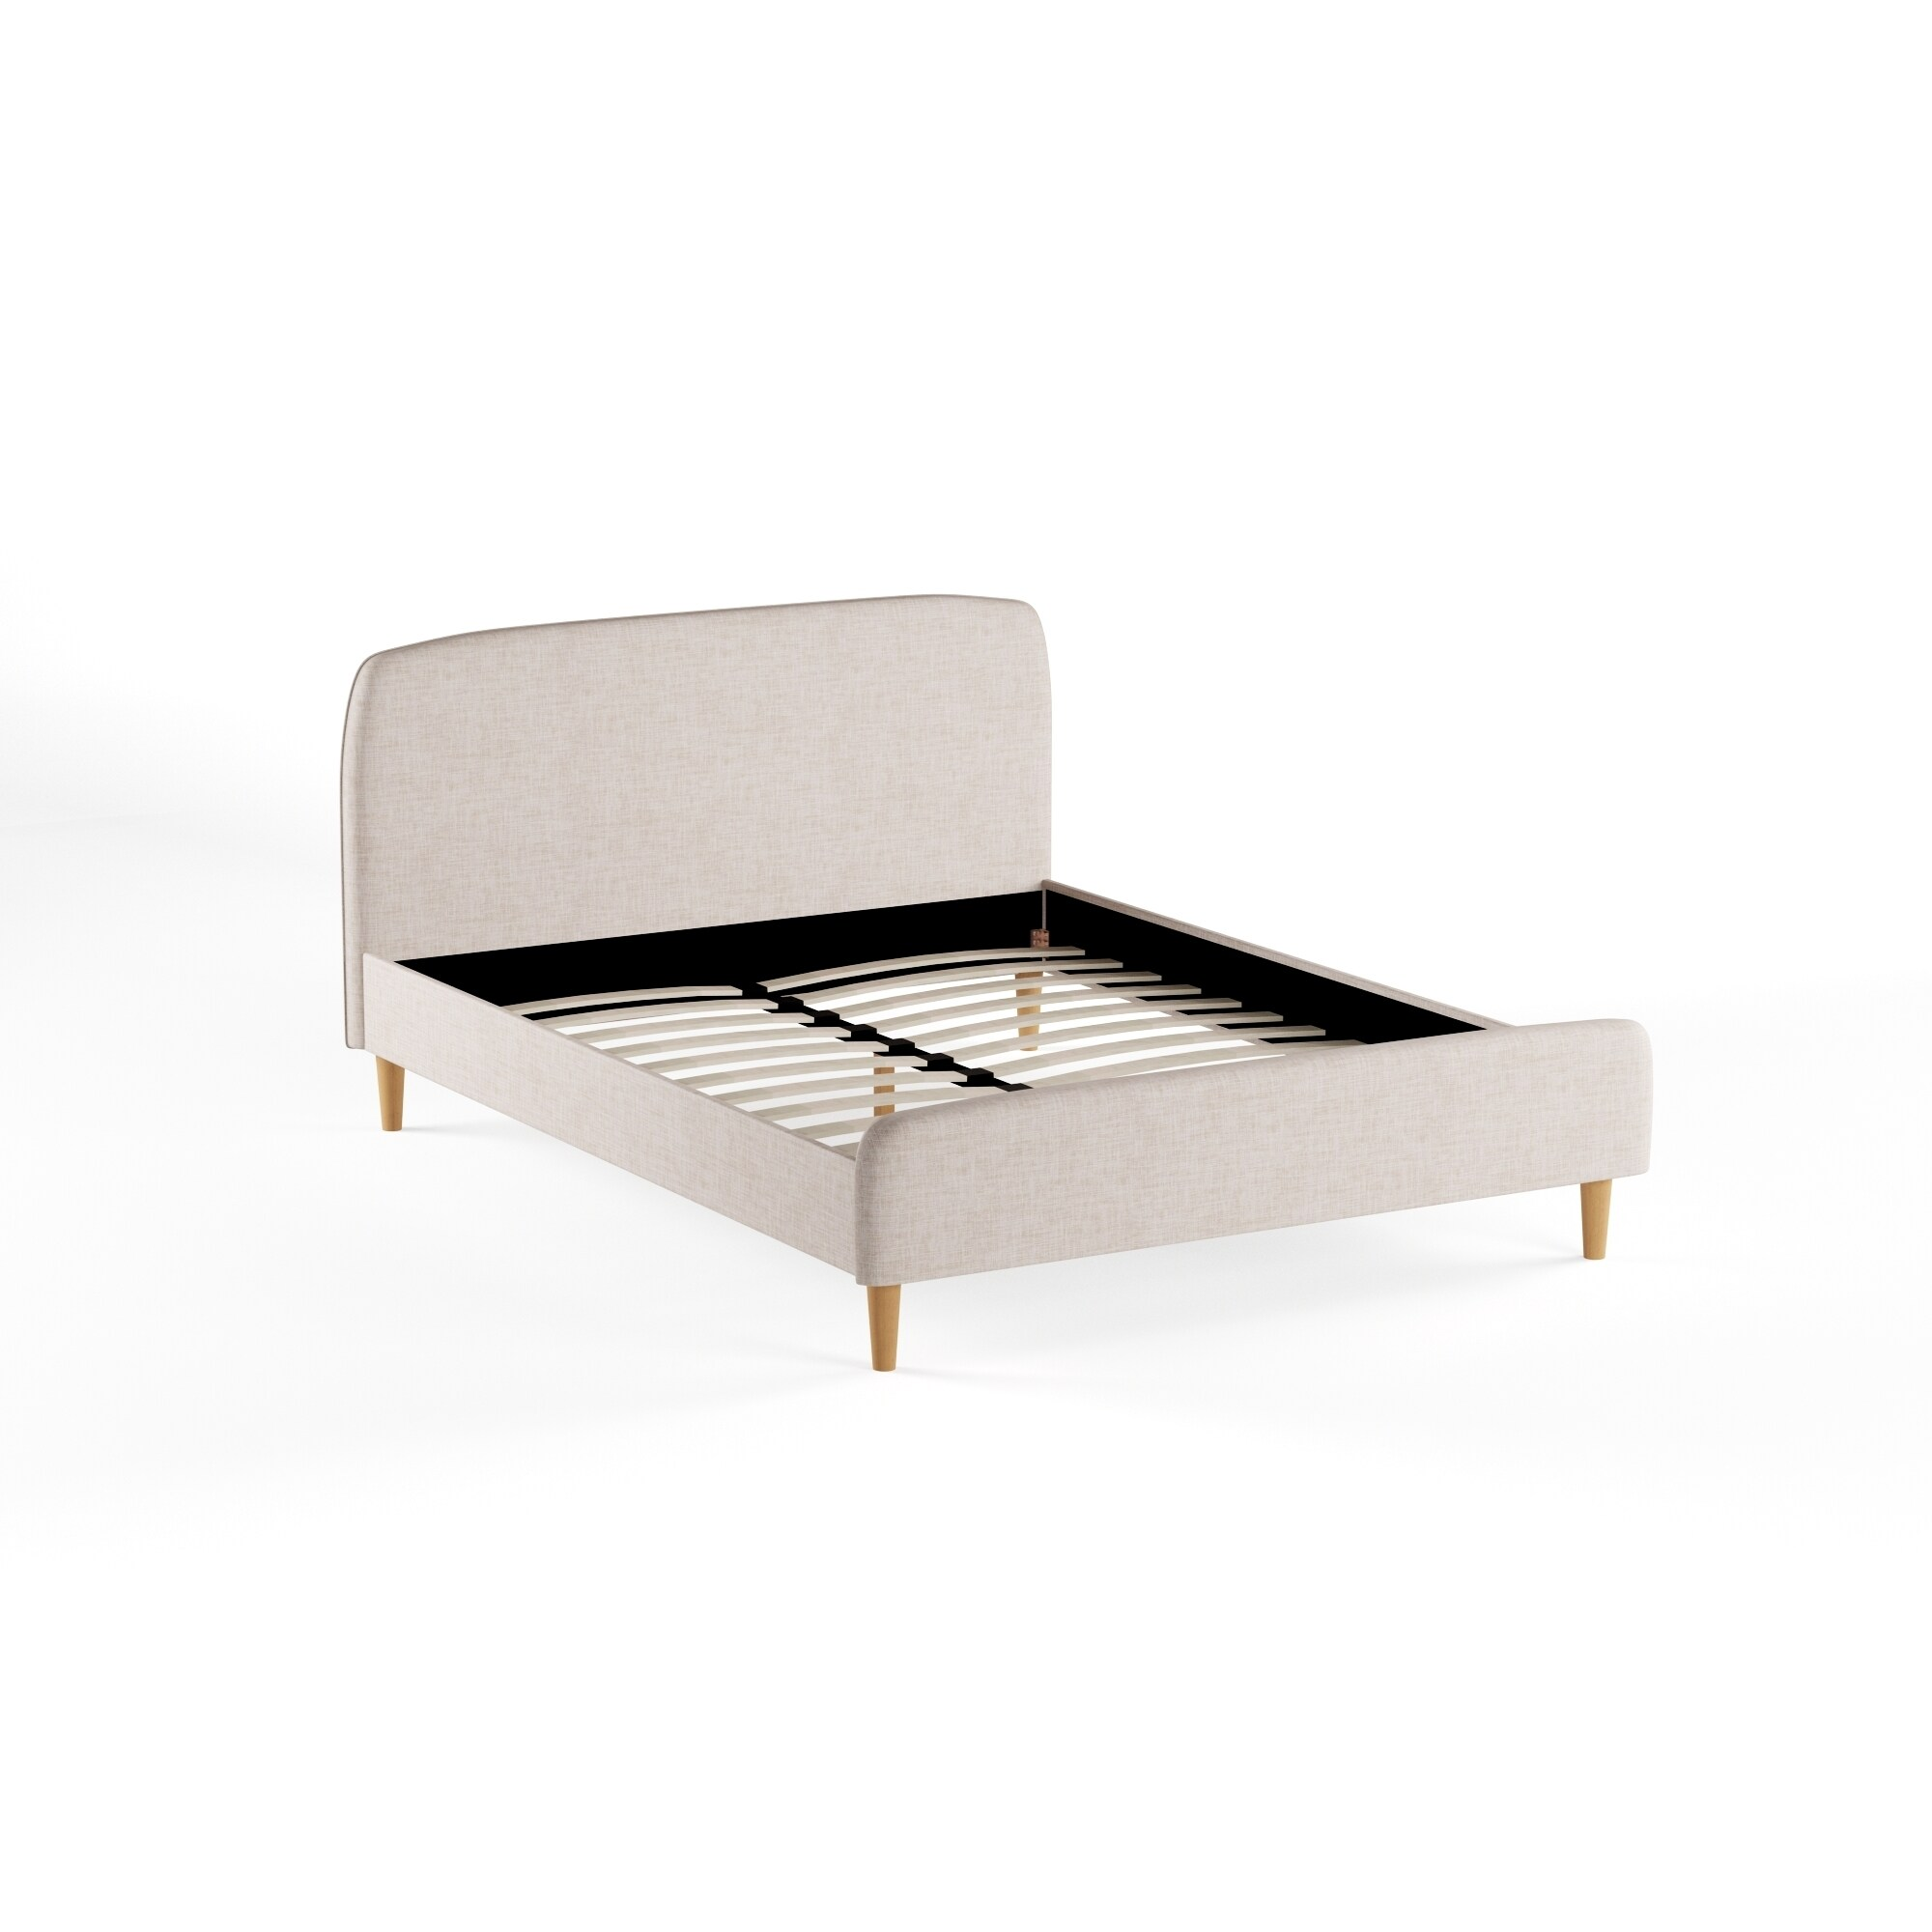 Mid-Century Fabric Upholstered Platform Bed by Baxton Stu...